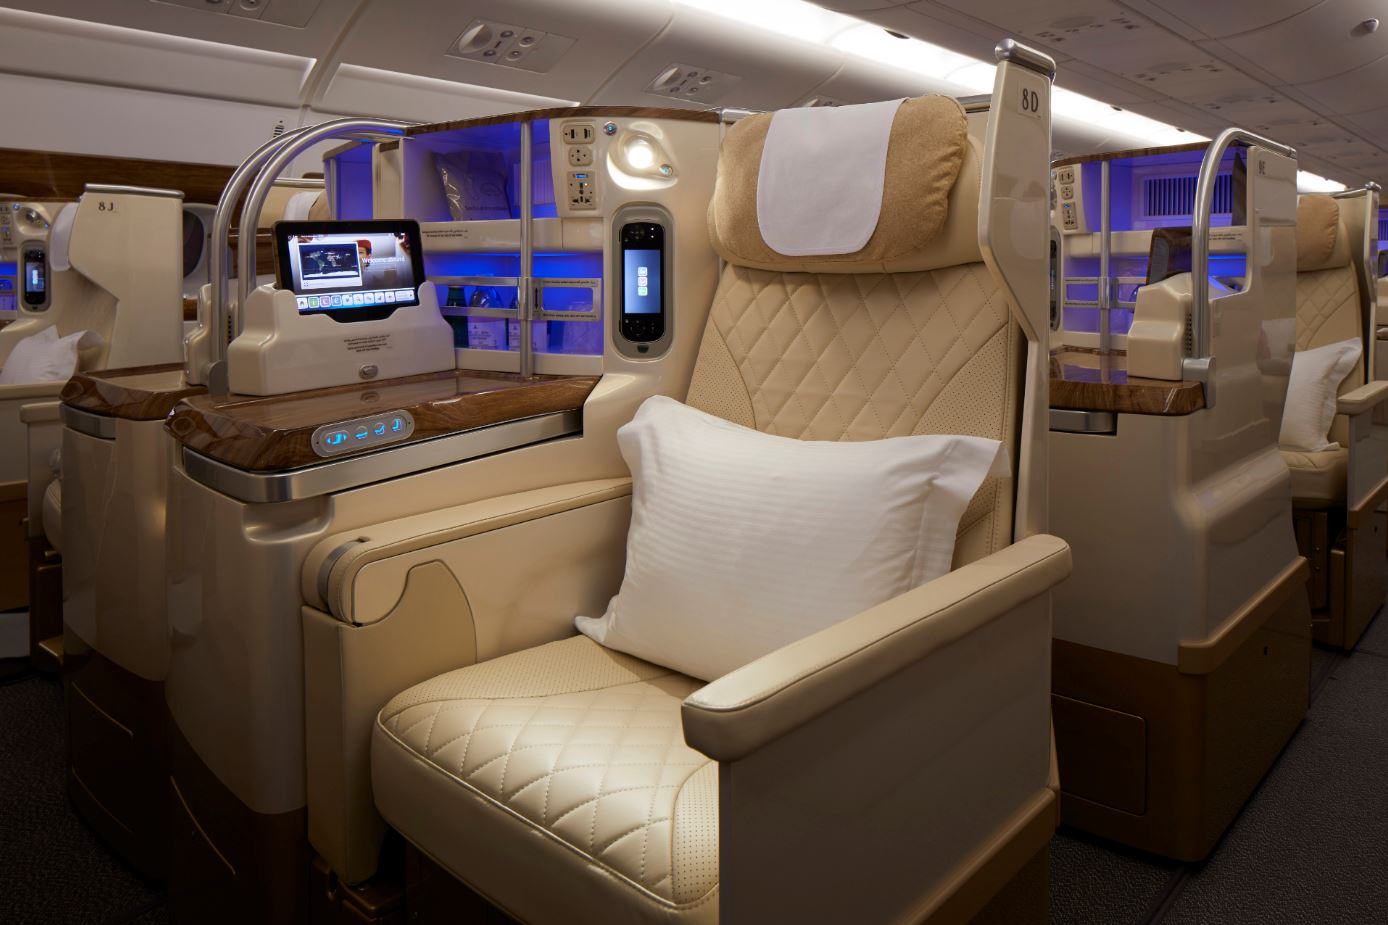 Emirates new business class. How Emirates is taking its A380 luxury to new heights